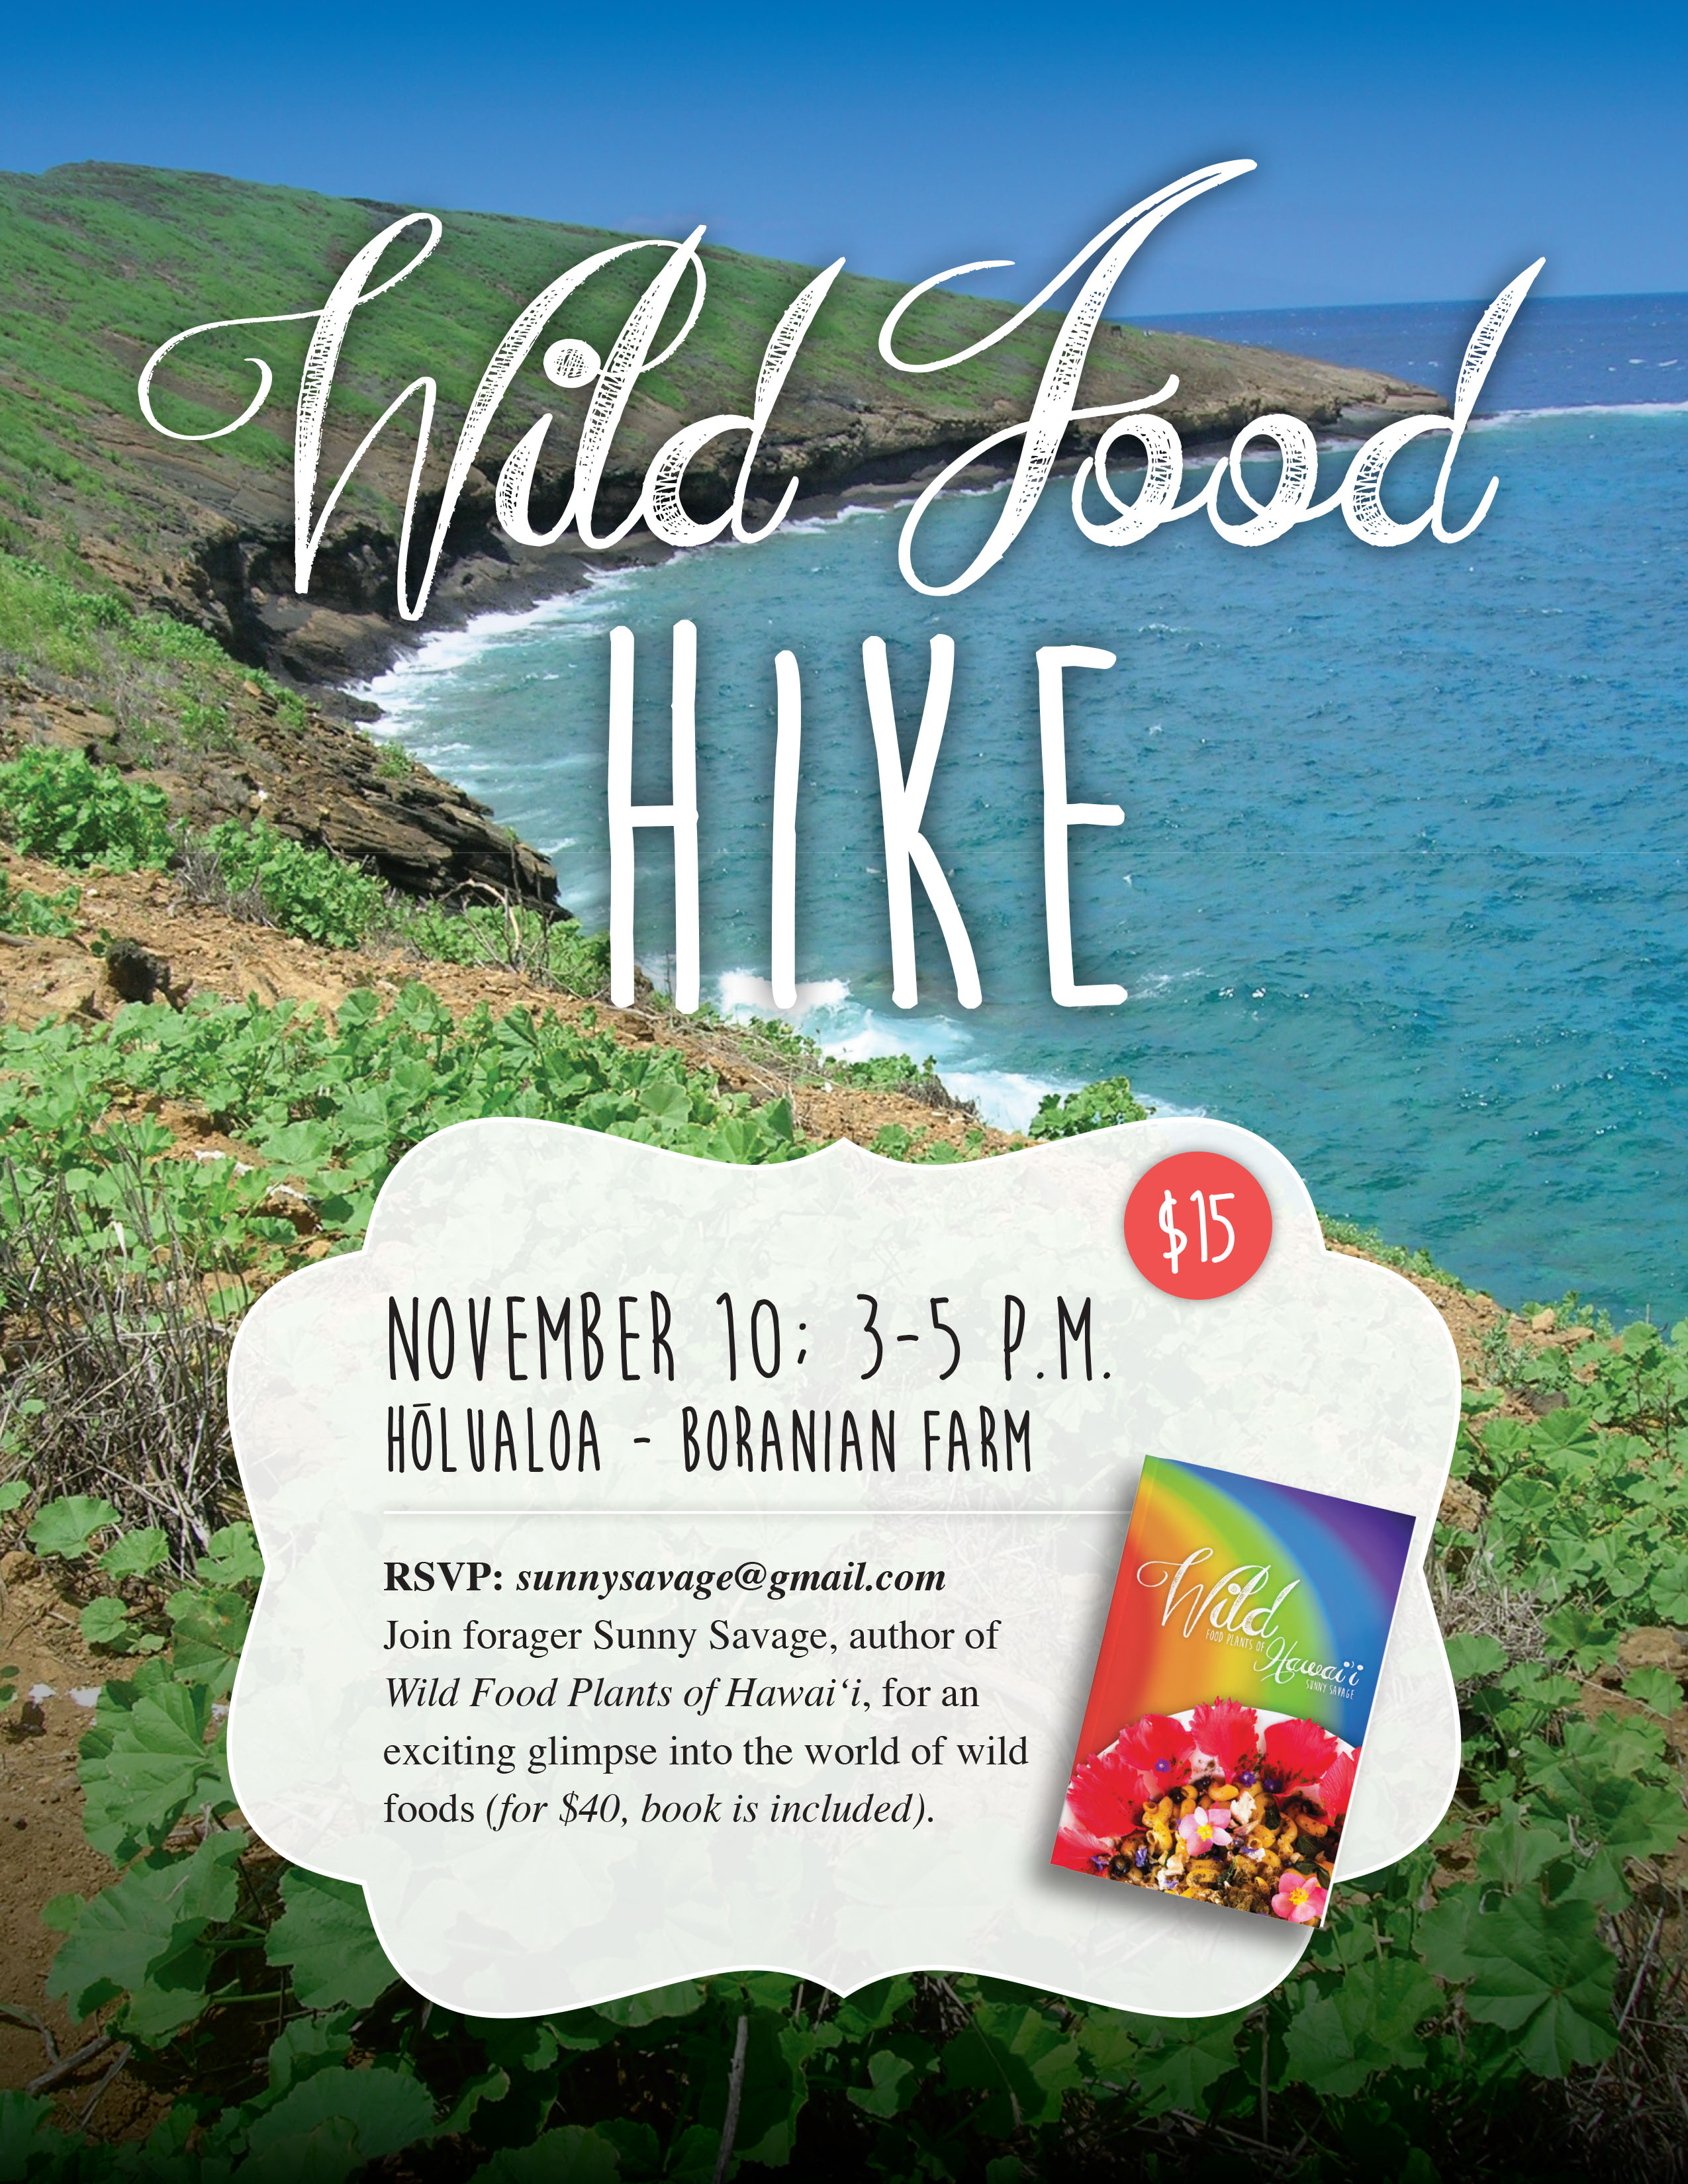 Nov 10 hike - Boranian Farms